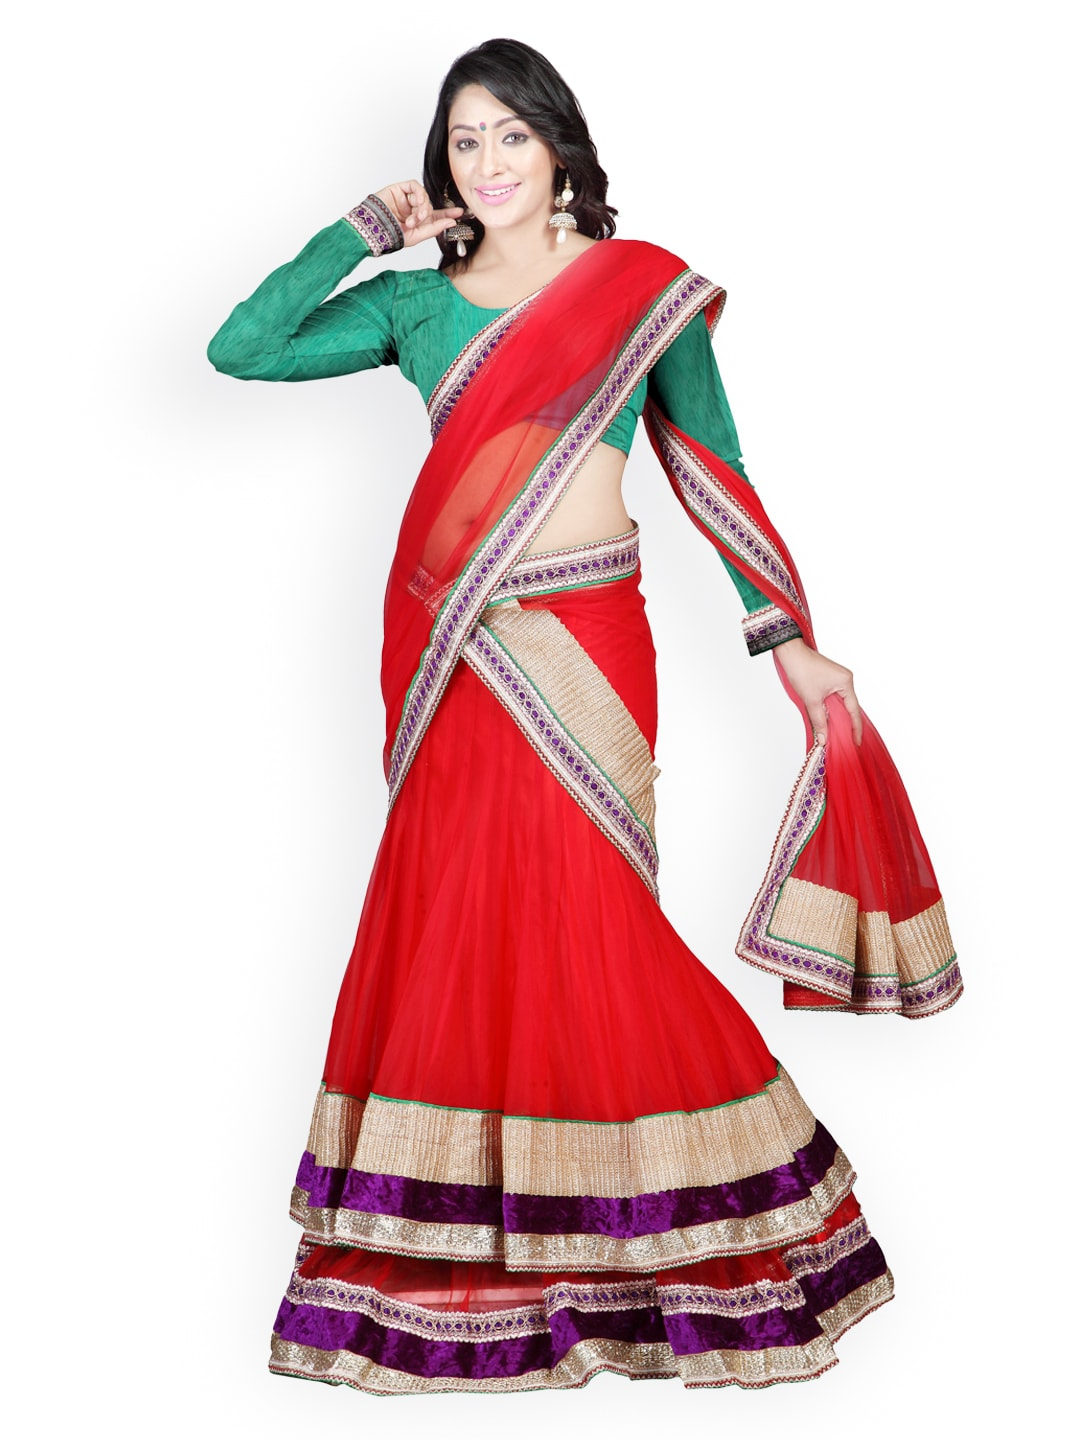 Florence Red Embroidered Georgette Semi-Stitched Lehenga Choli Material with Dupatta image